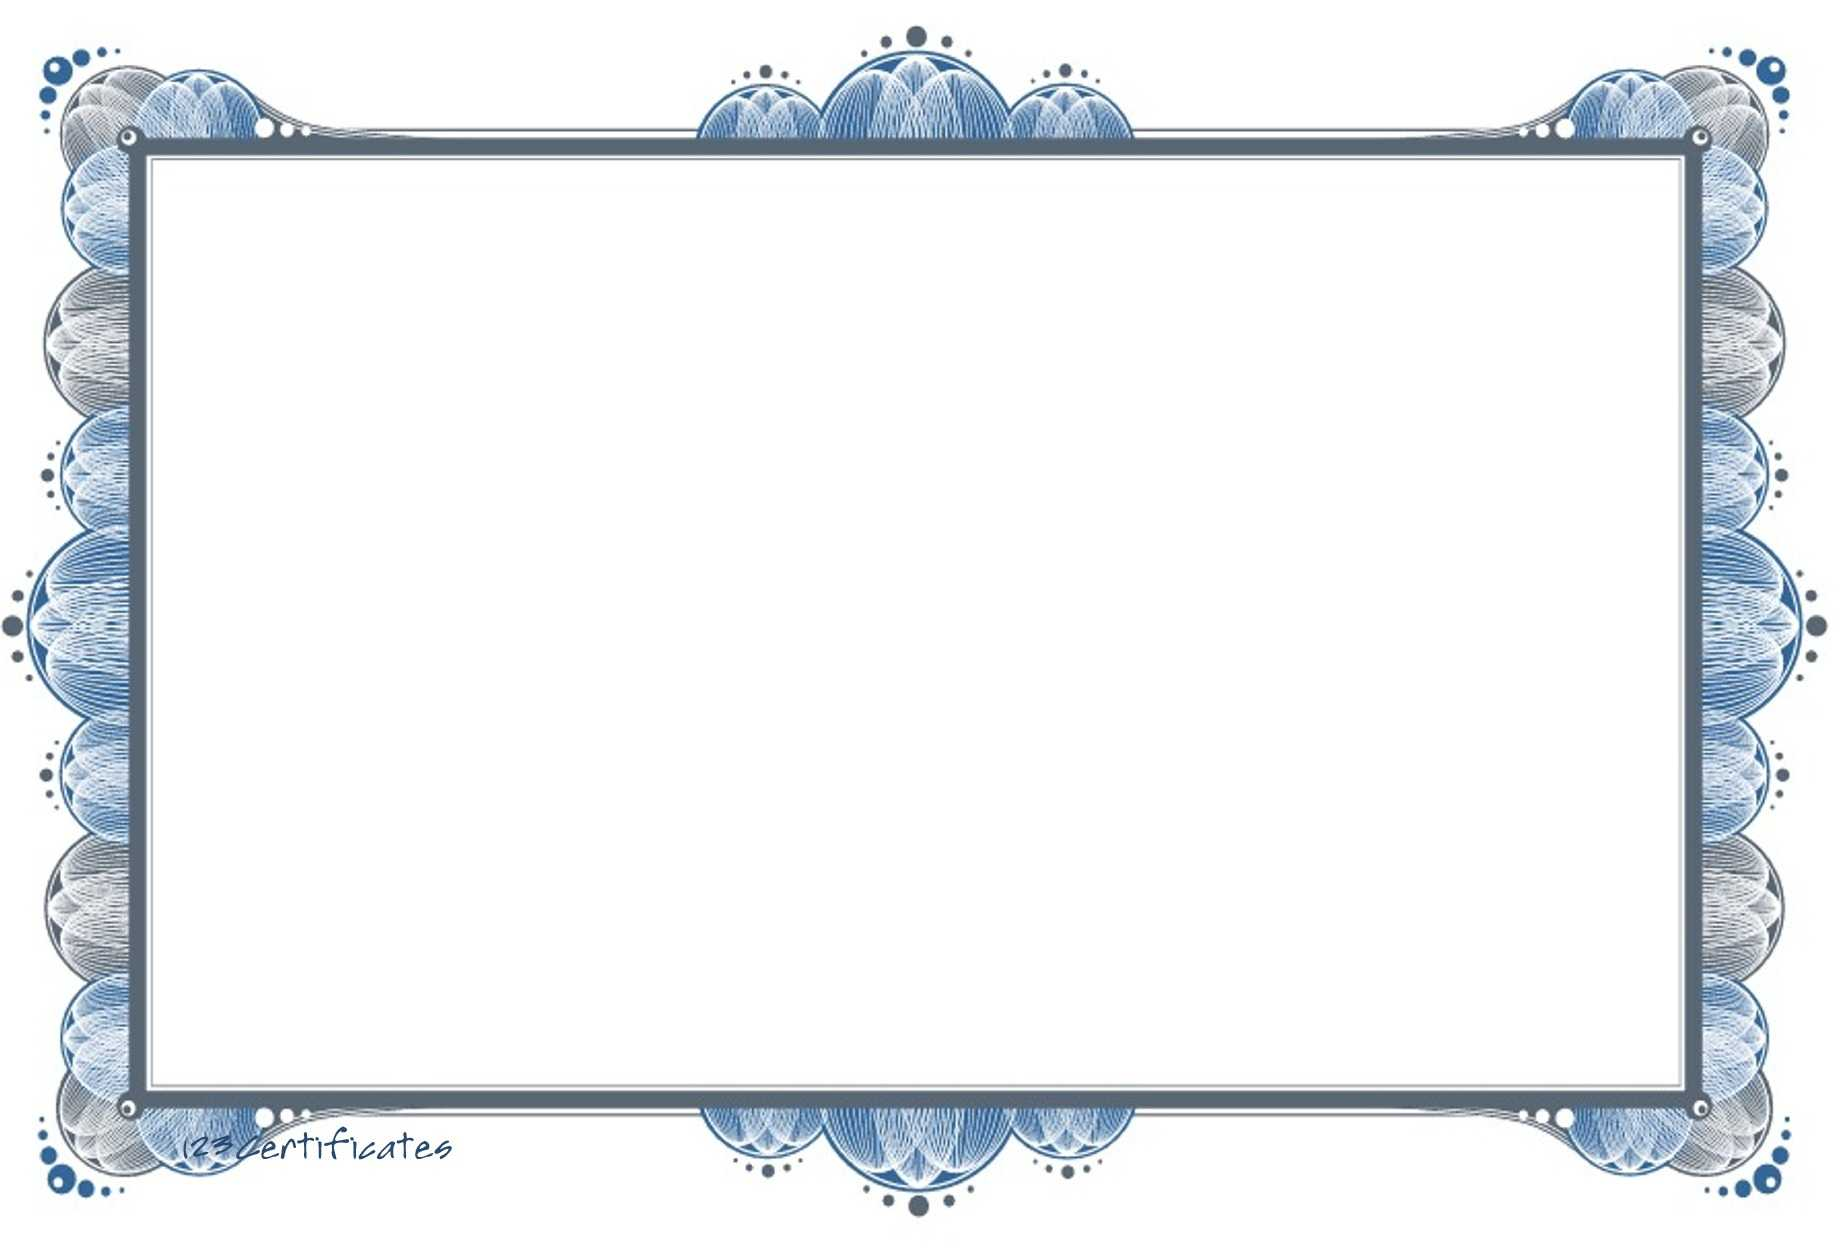 Free Certificate Borders, Download Free Clip Art, Free Clip Within Art Certificate Template Free